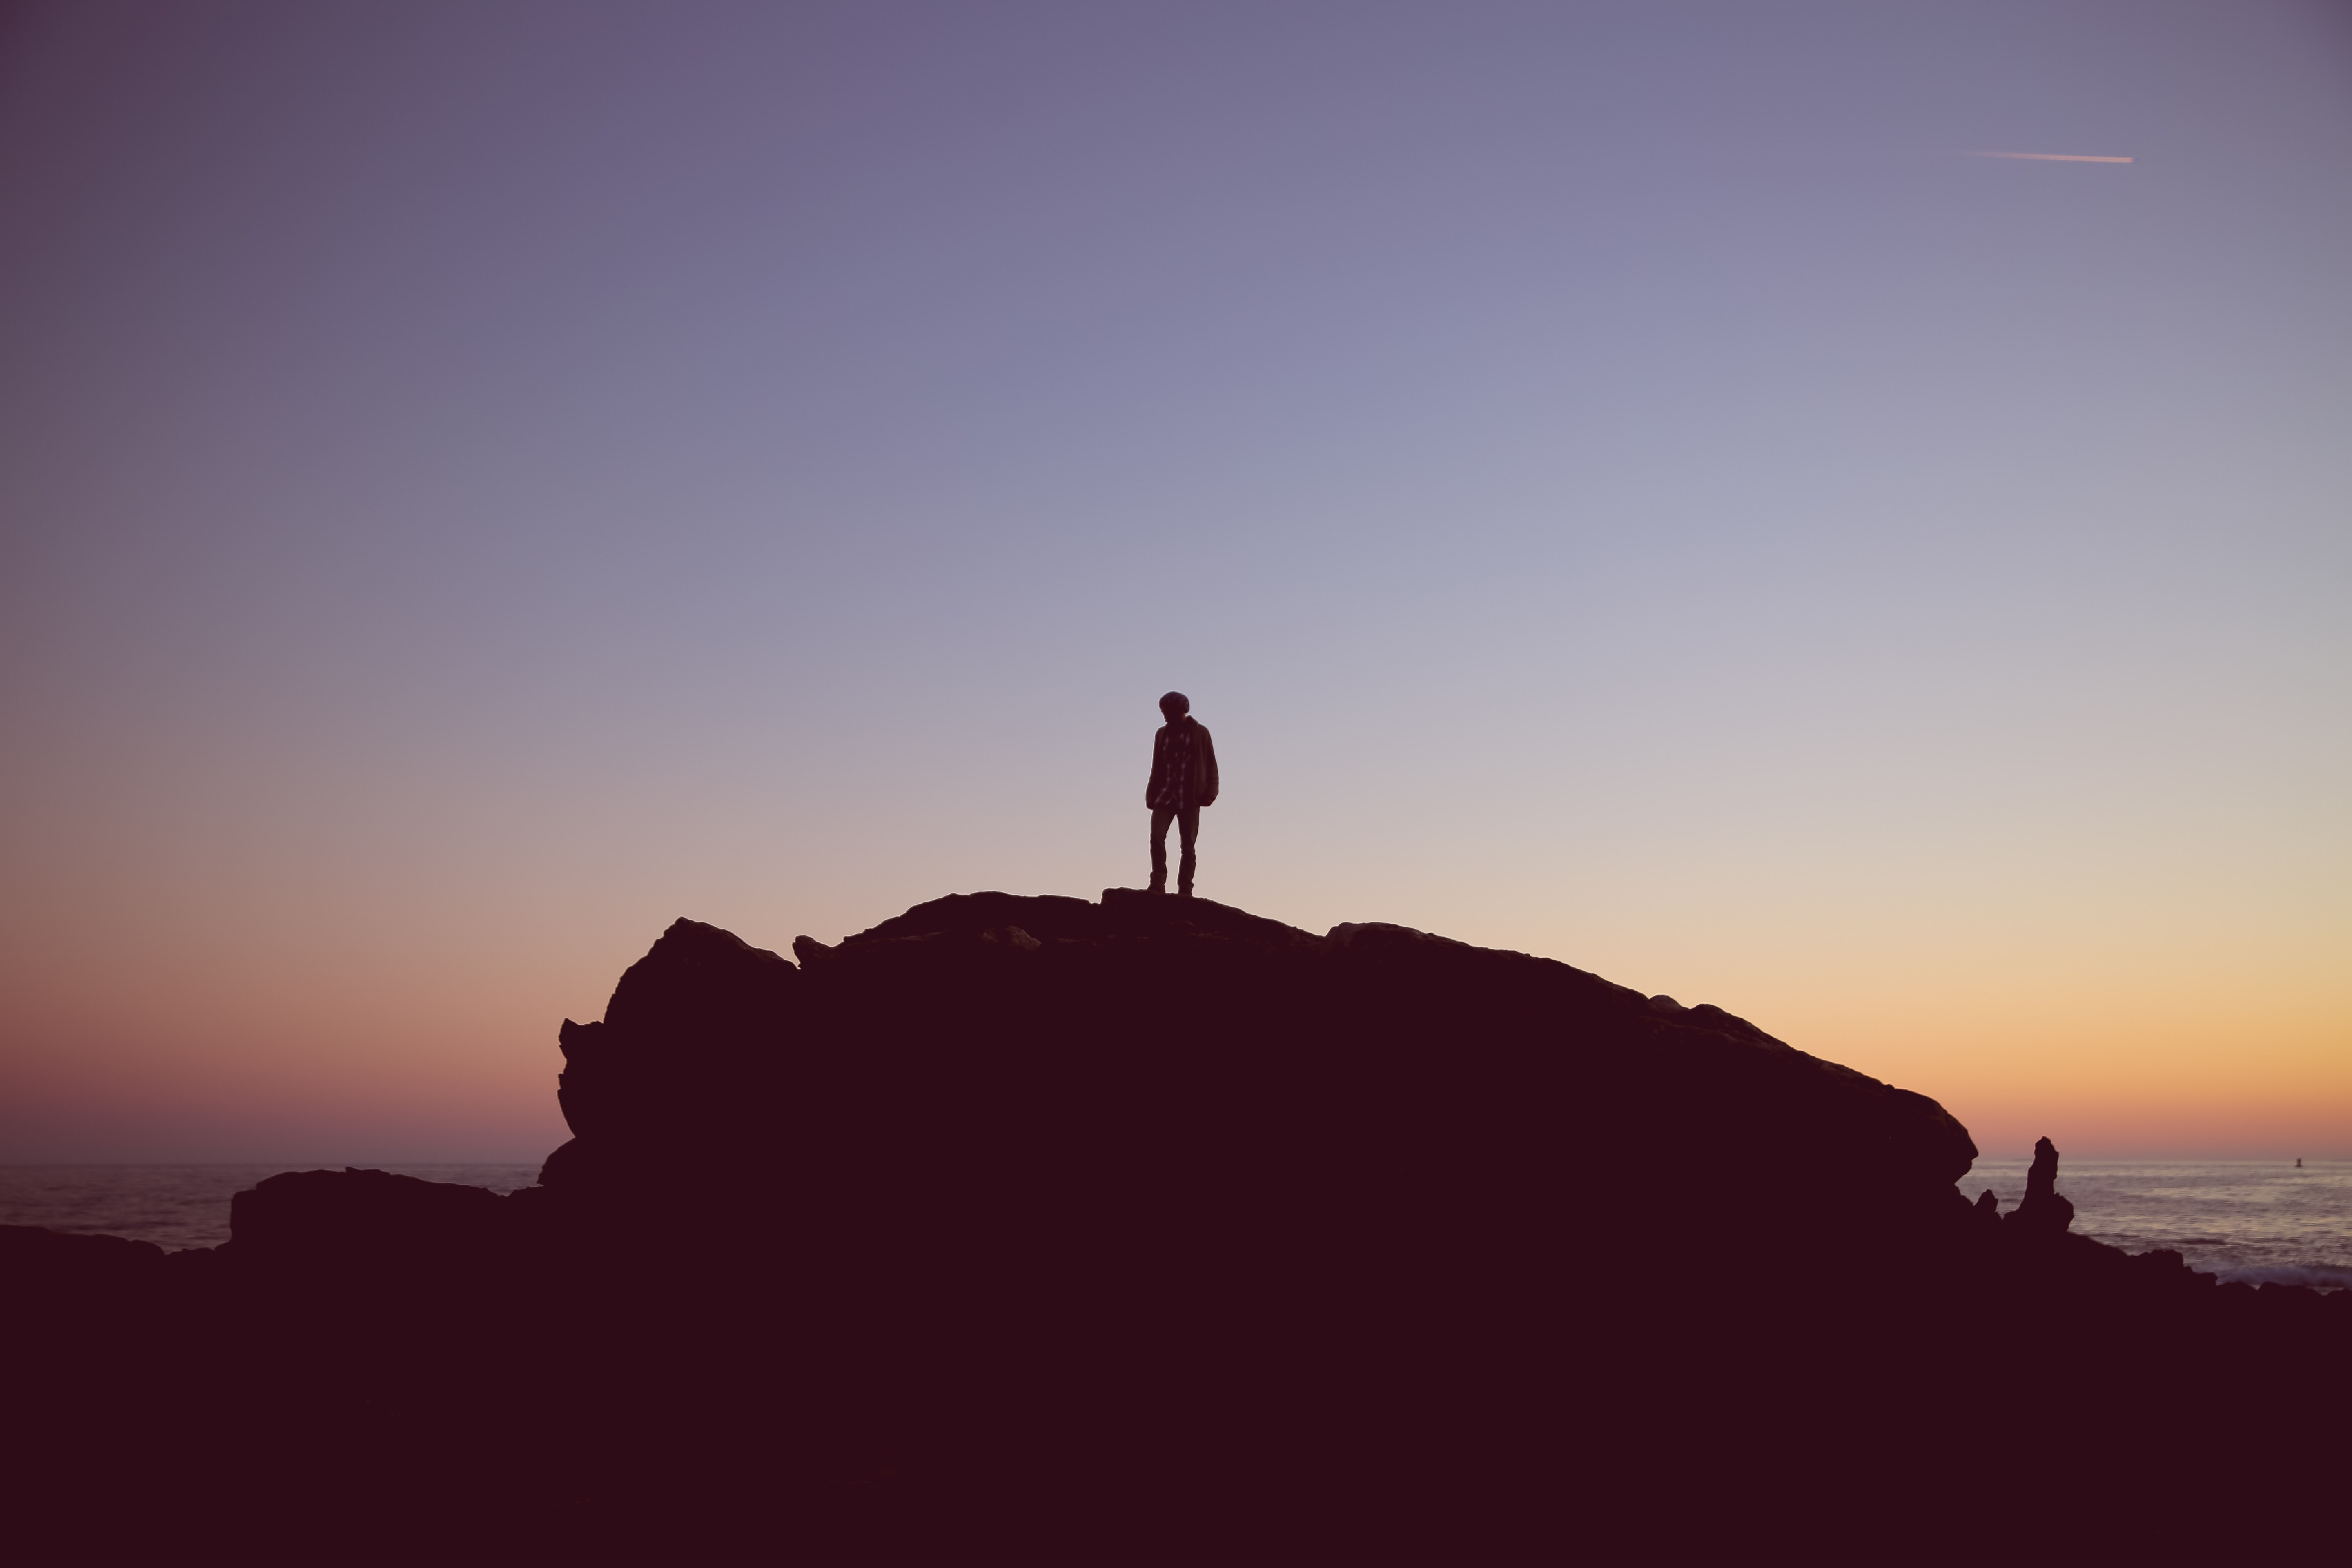 silhouette of person standing on cliff